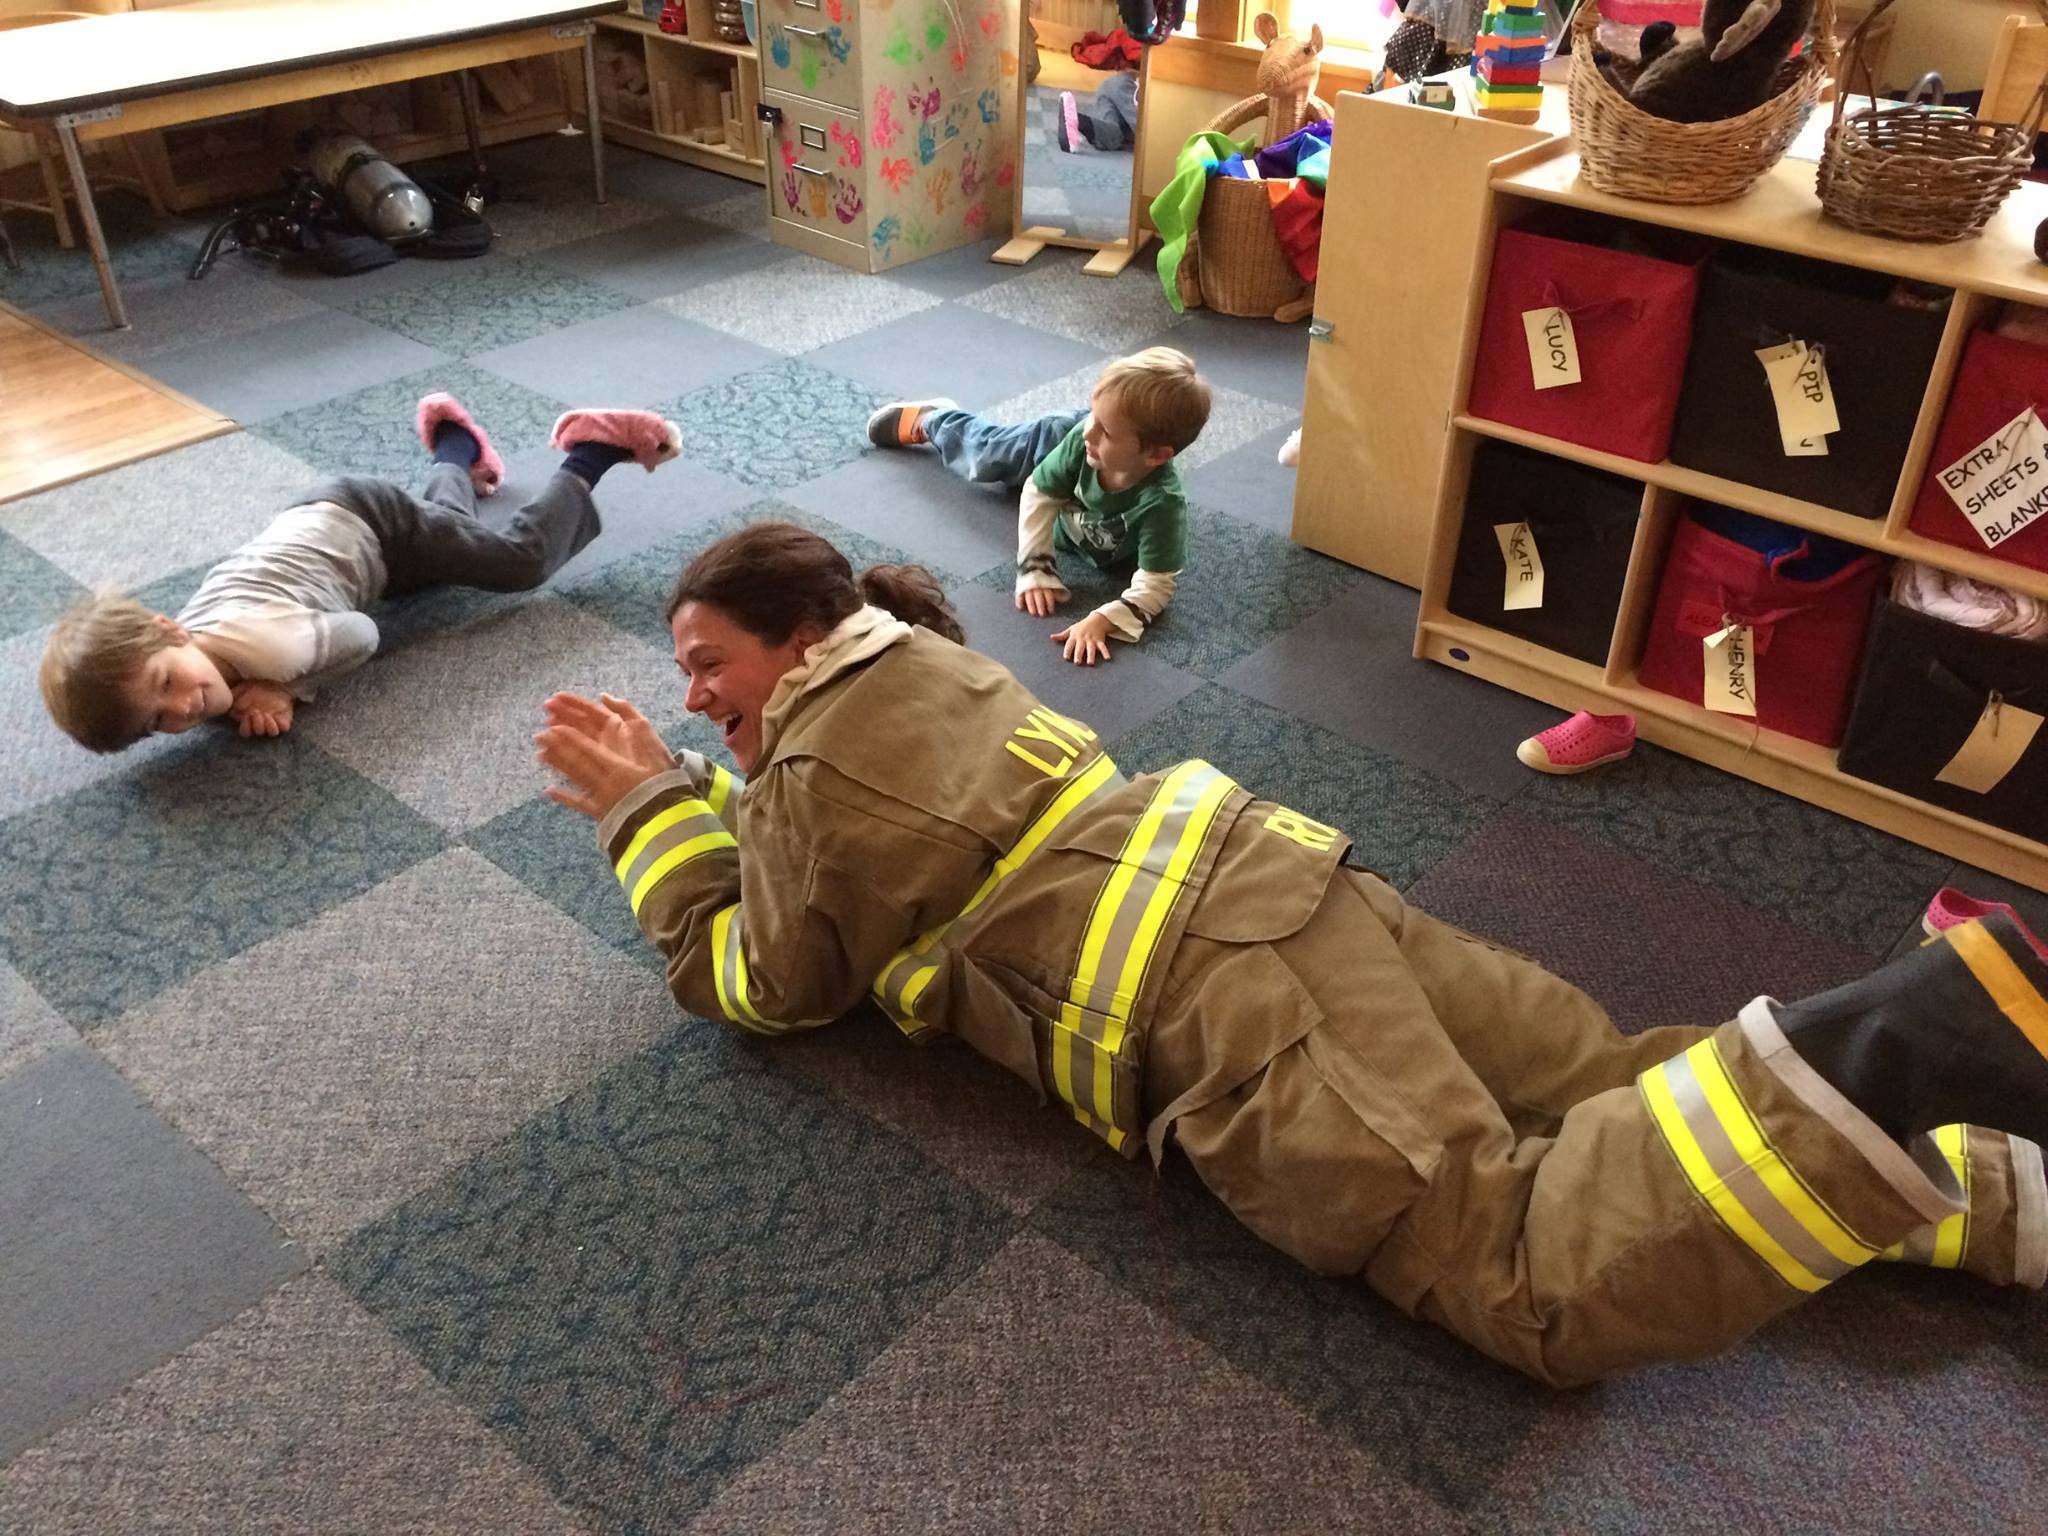 firefighter rolling on floor with preschool children